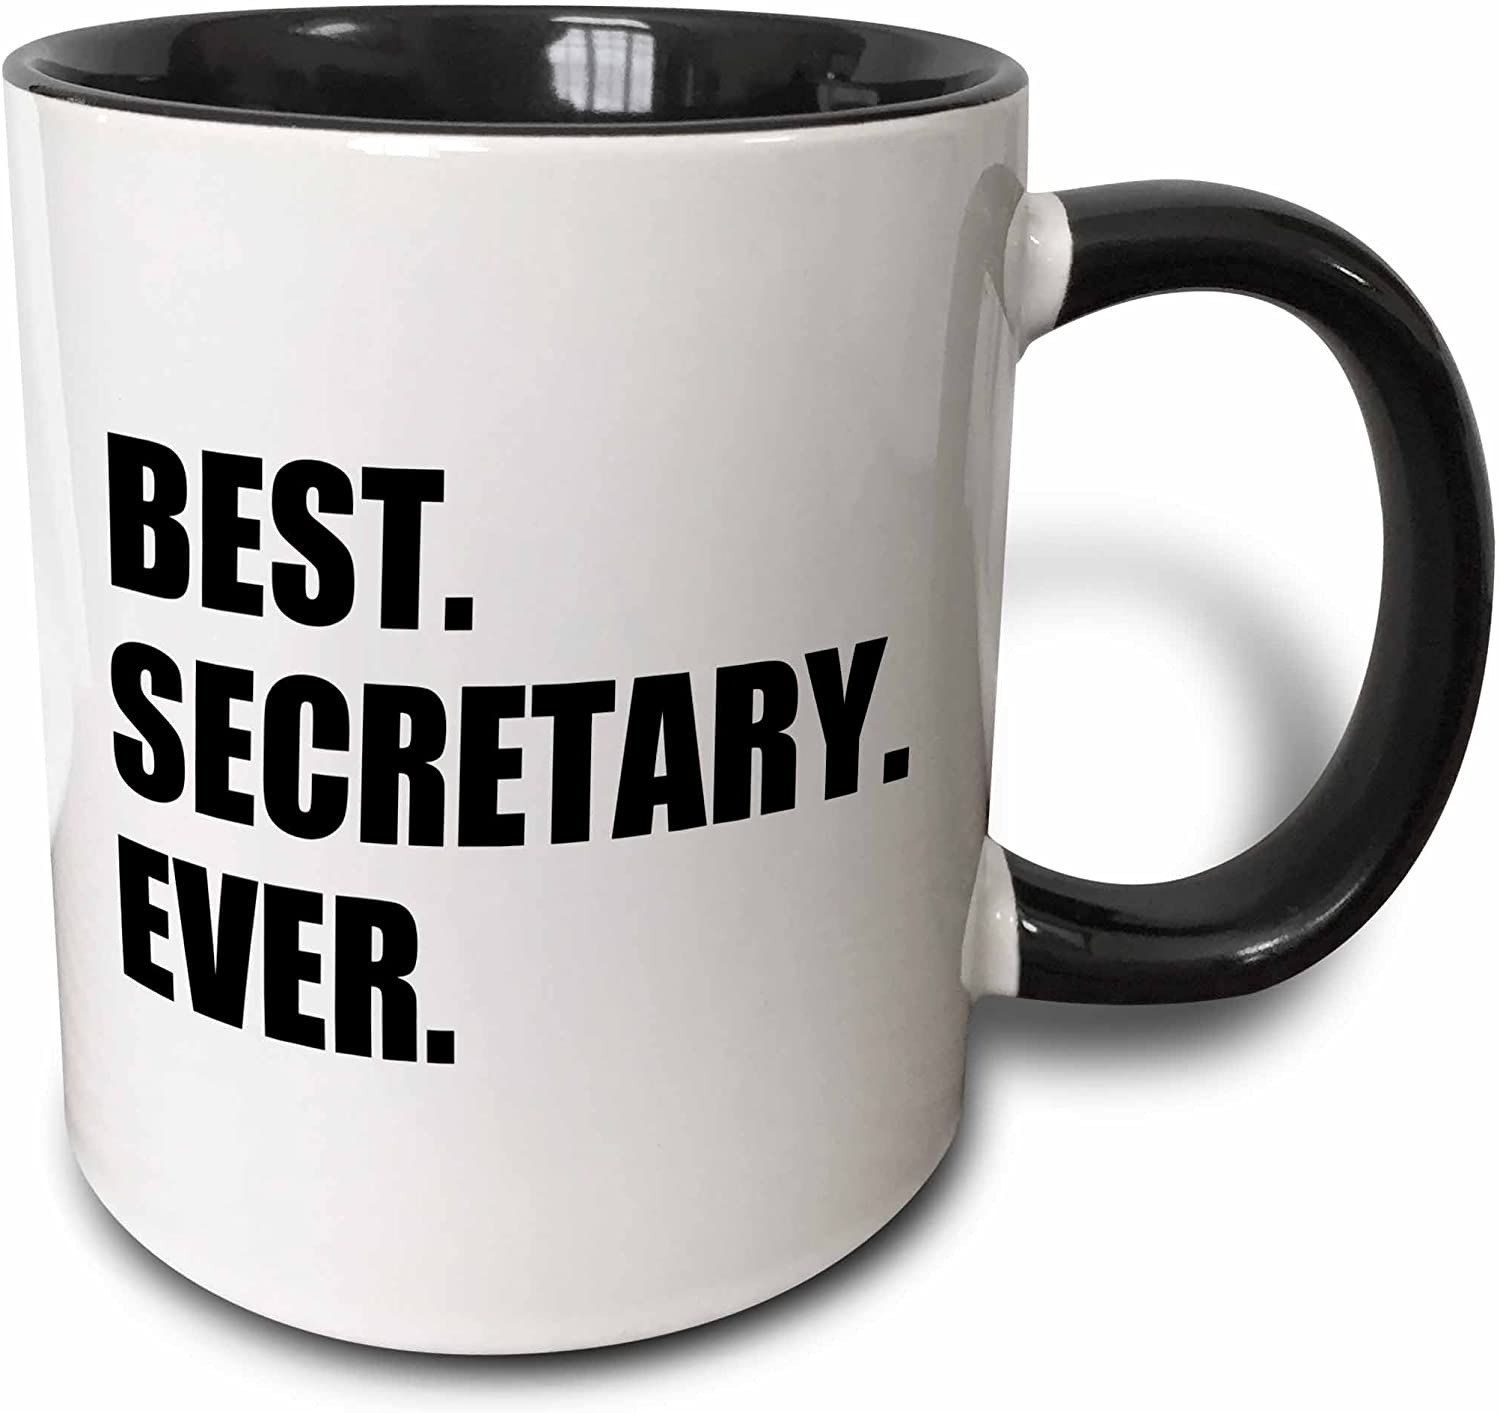 3dRose 185020_4 Best Ever Fun Gift For Talented Secretaries Black Text Two Tone Mug, 11 oz